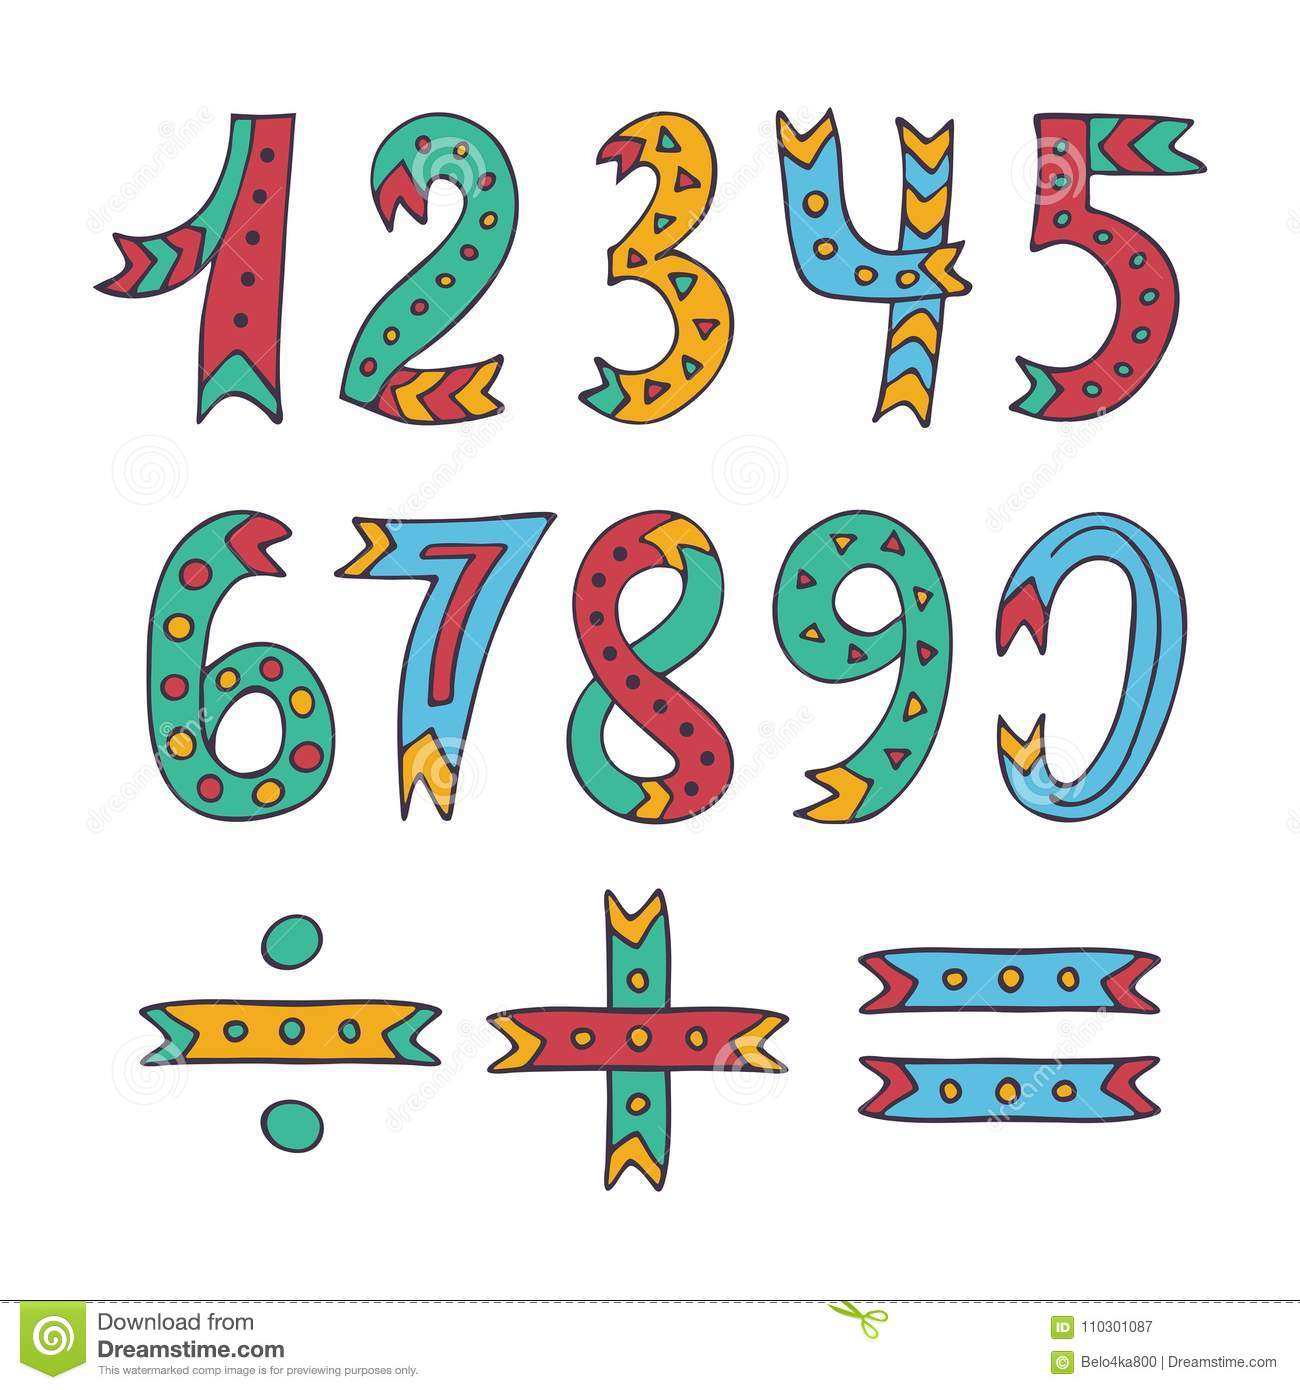 hand drawn sketched and doodled kids numbers isolated on white